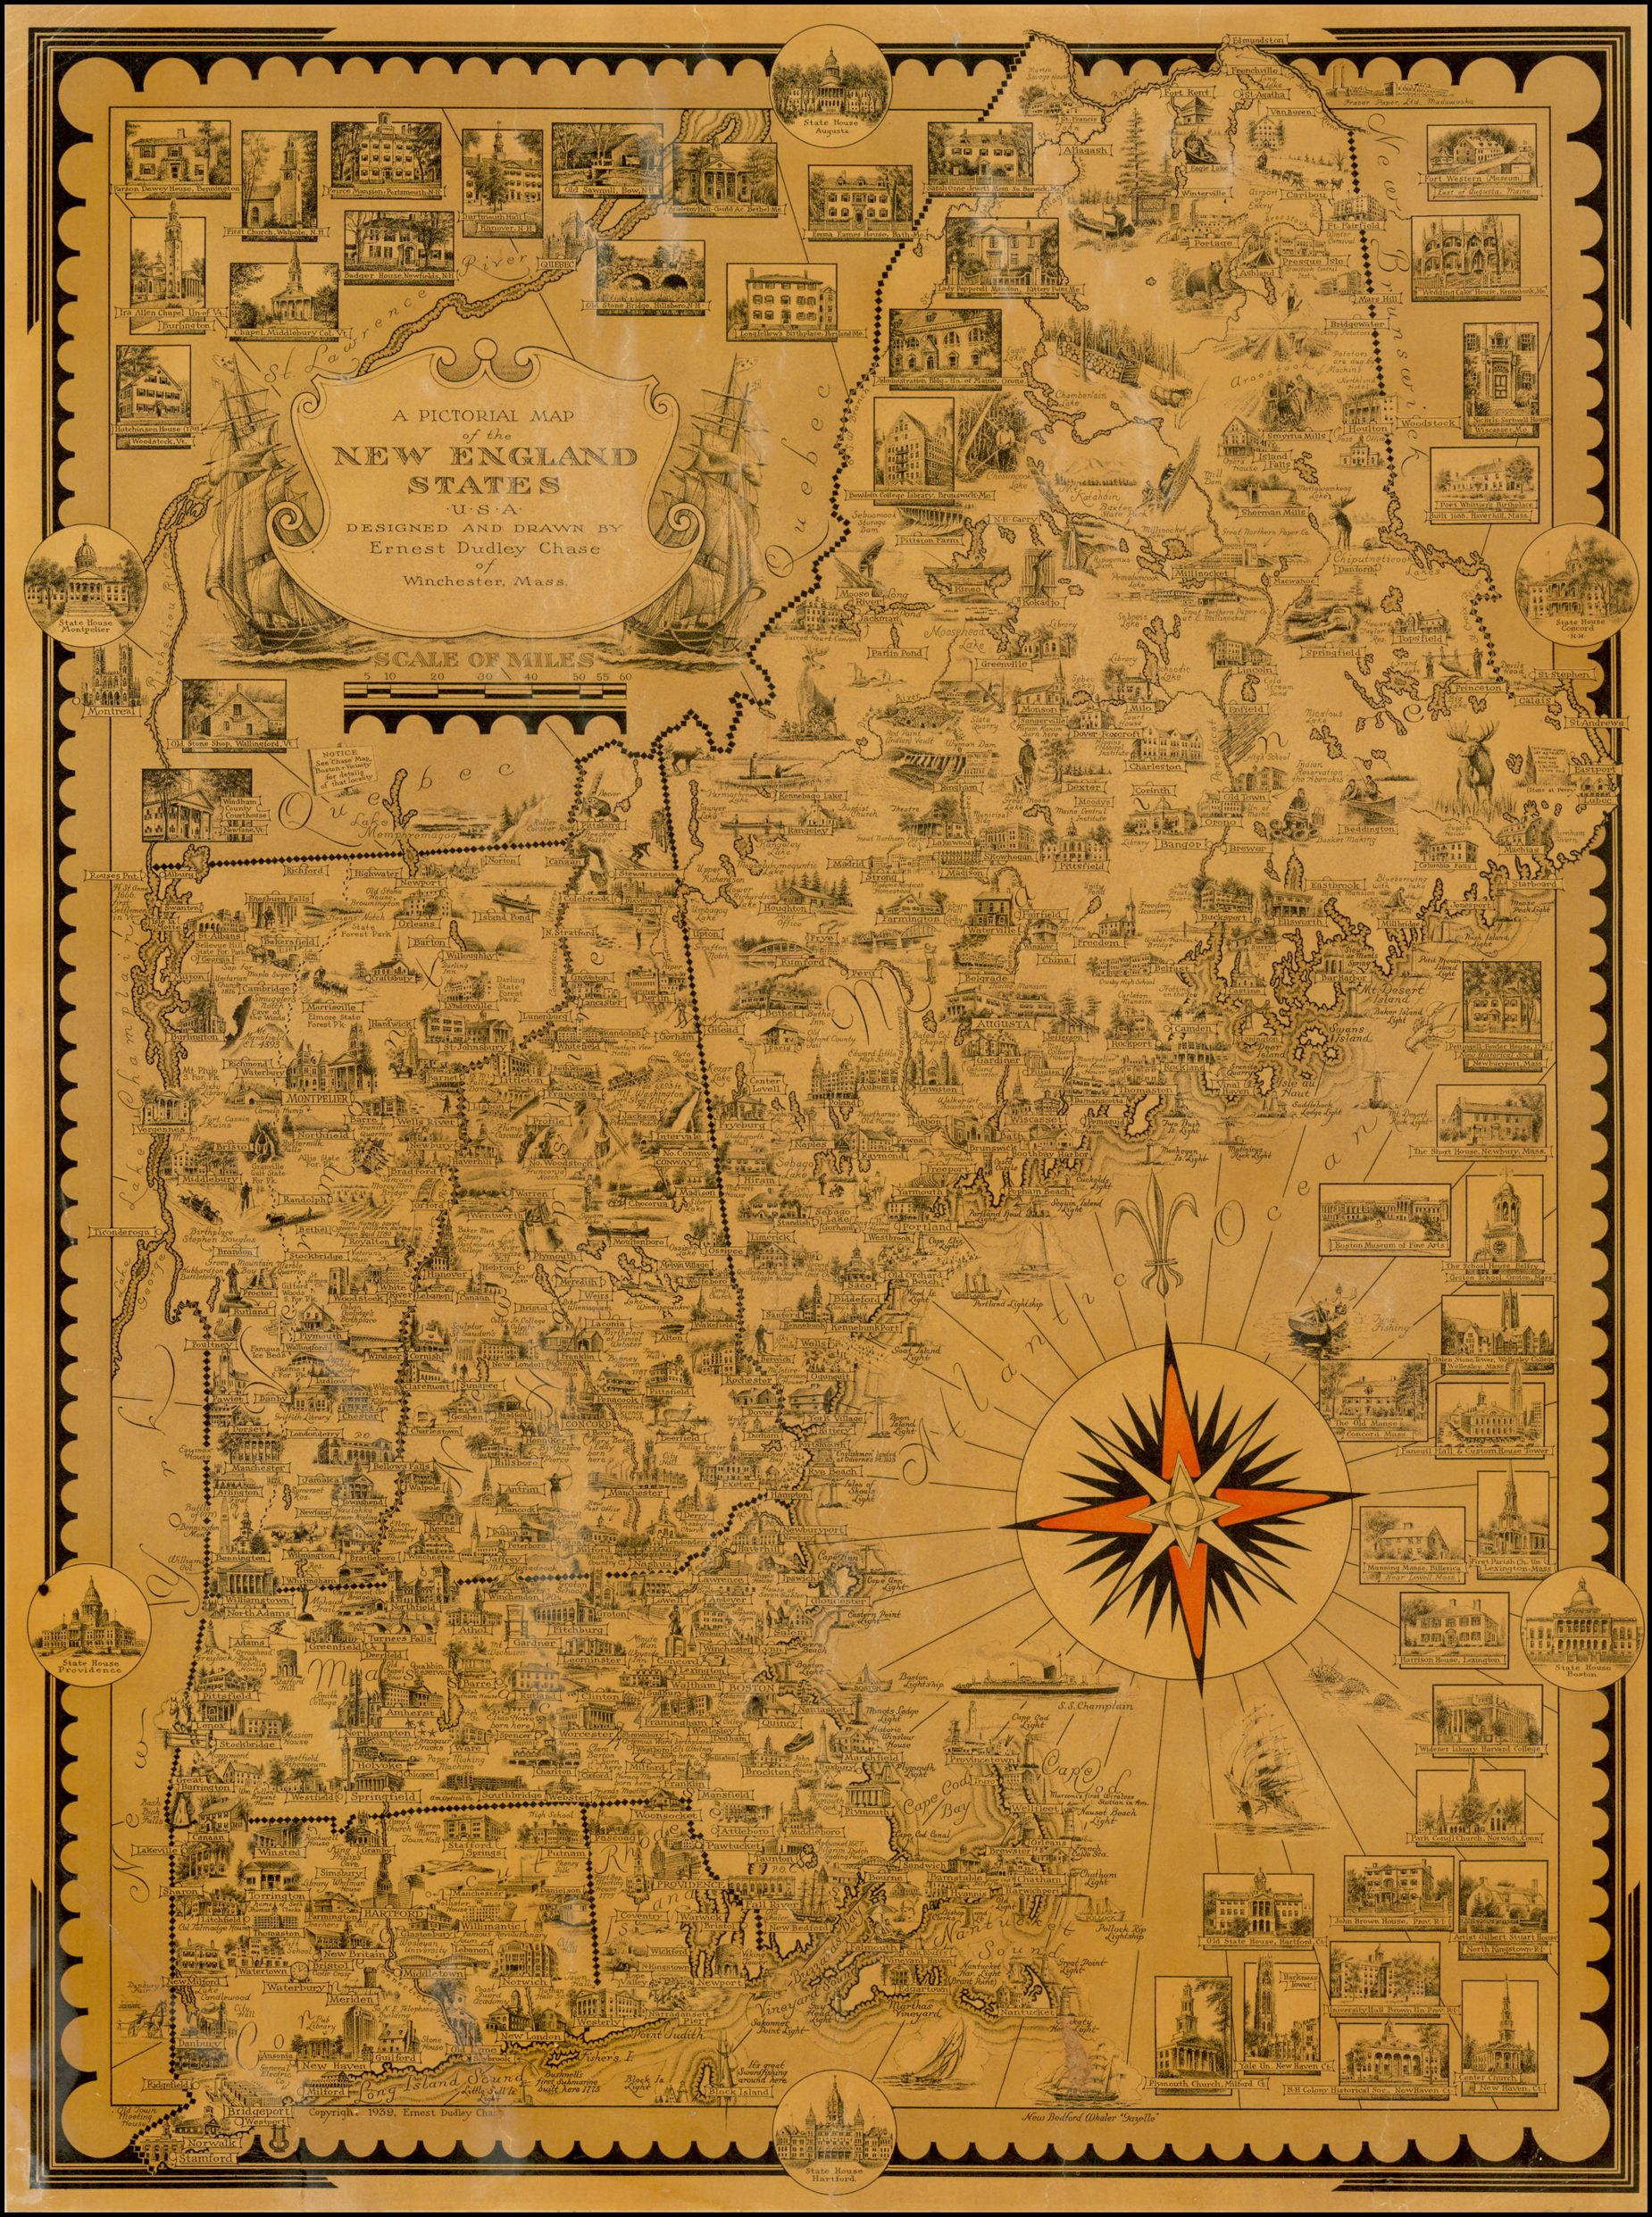 A Pictorial Map of the New England